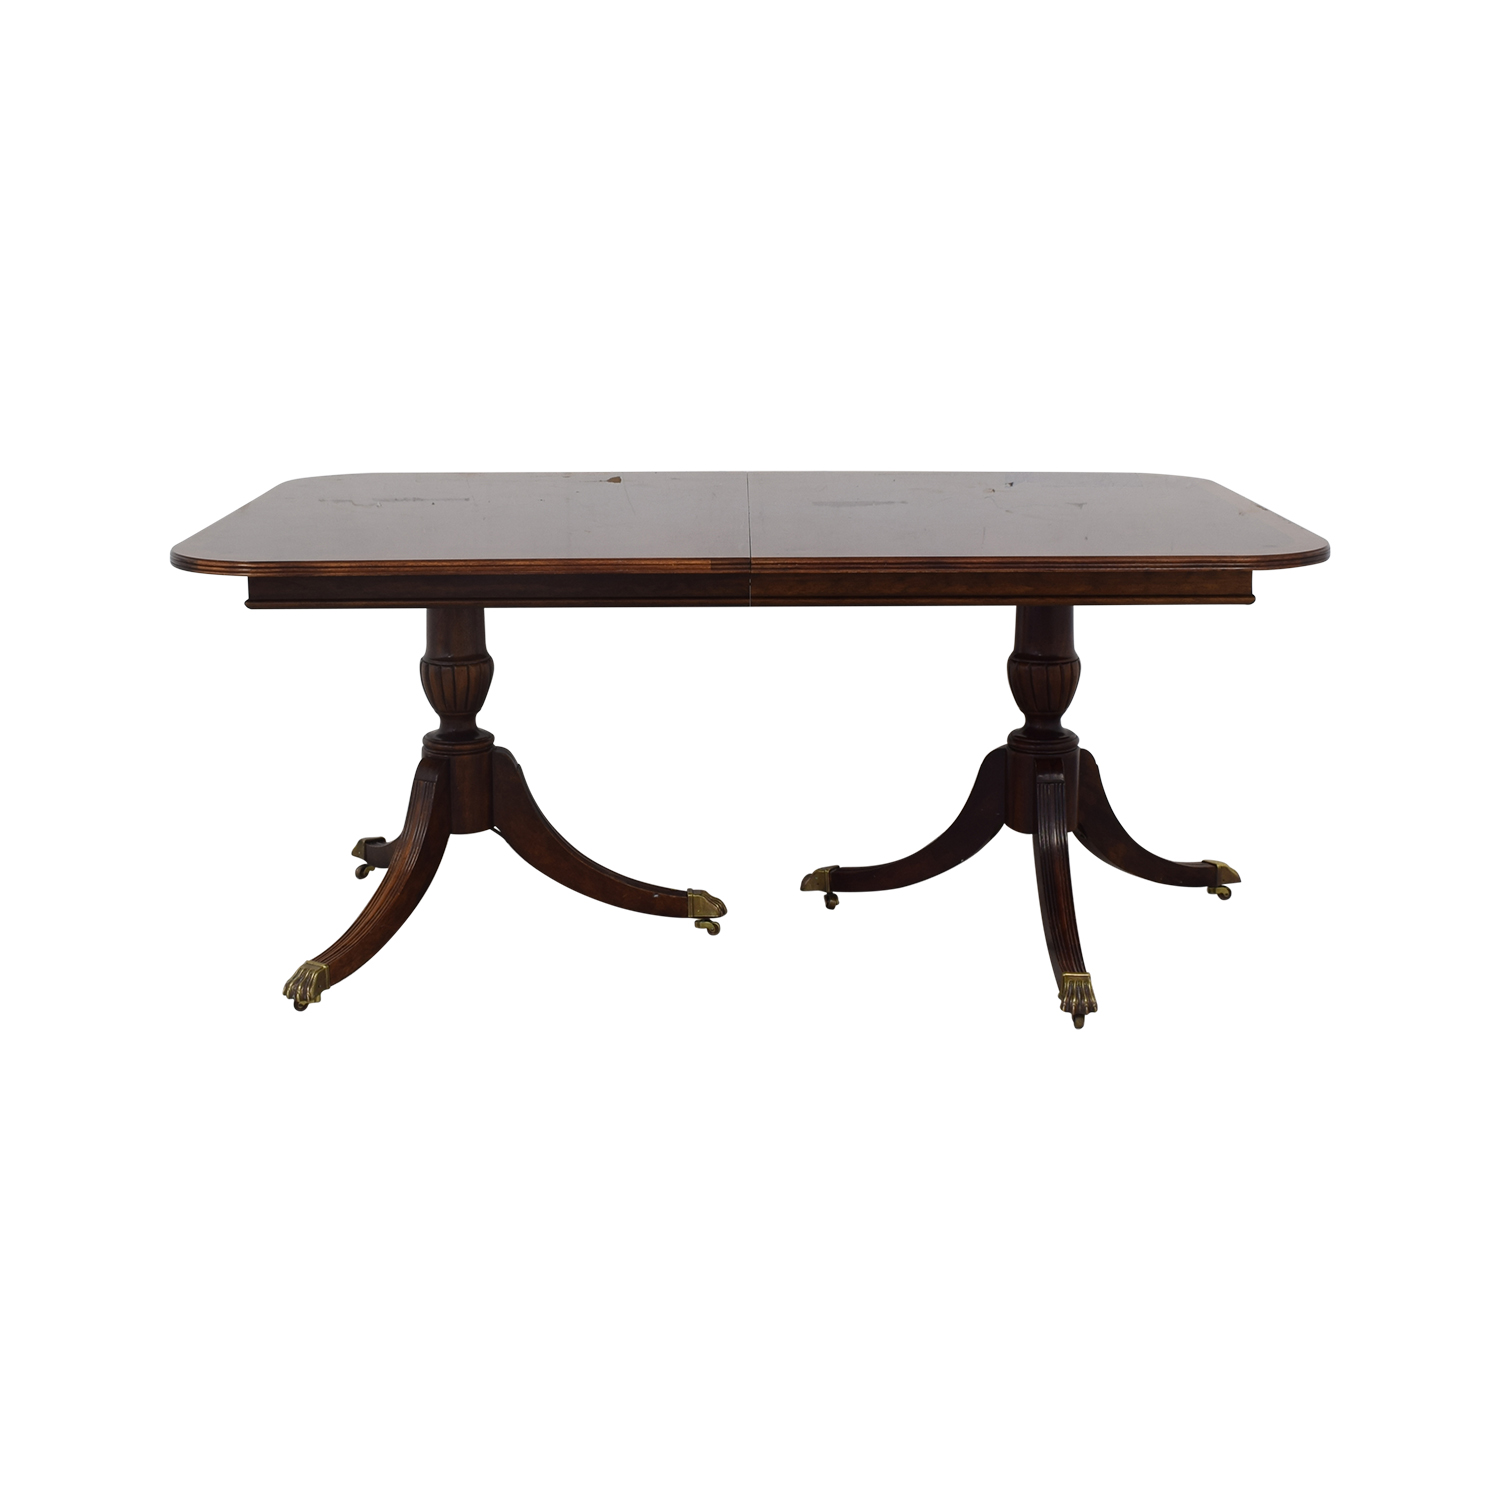 Thomasville Thomasville Extendable Dining Table coupon